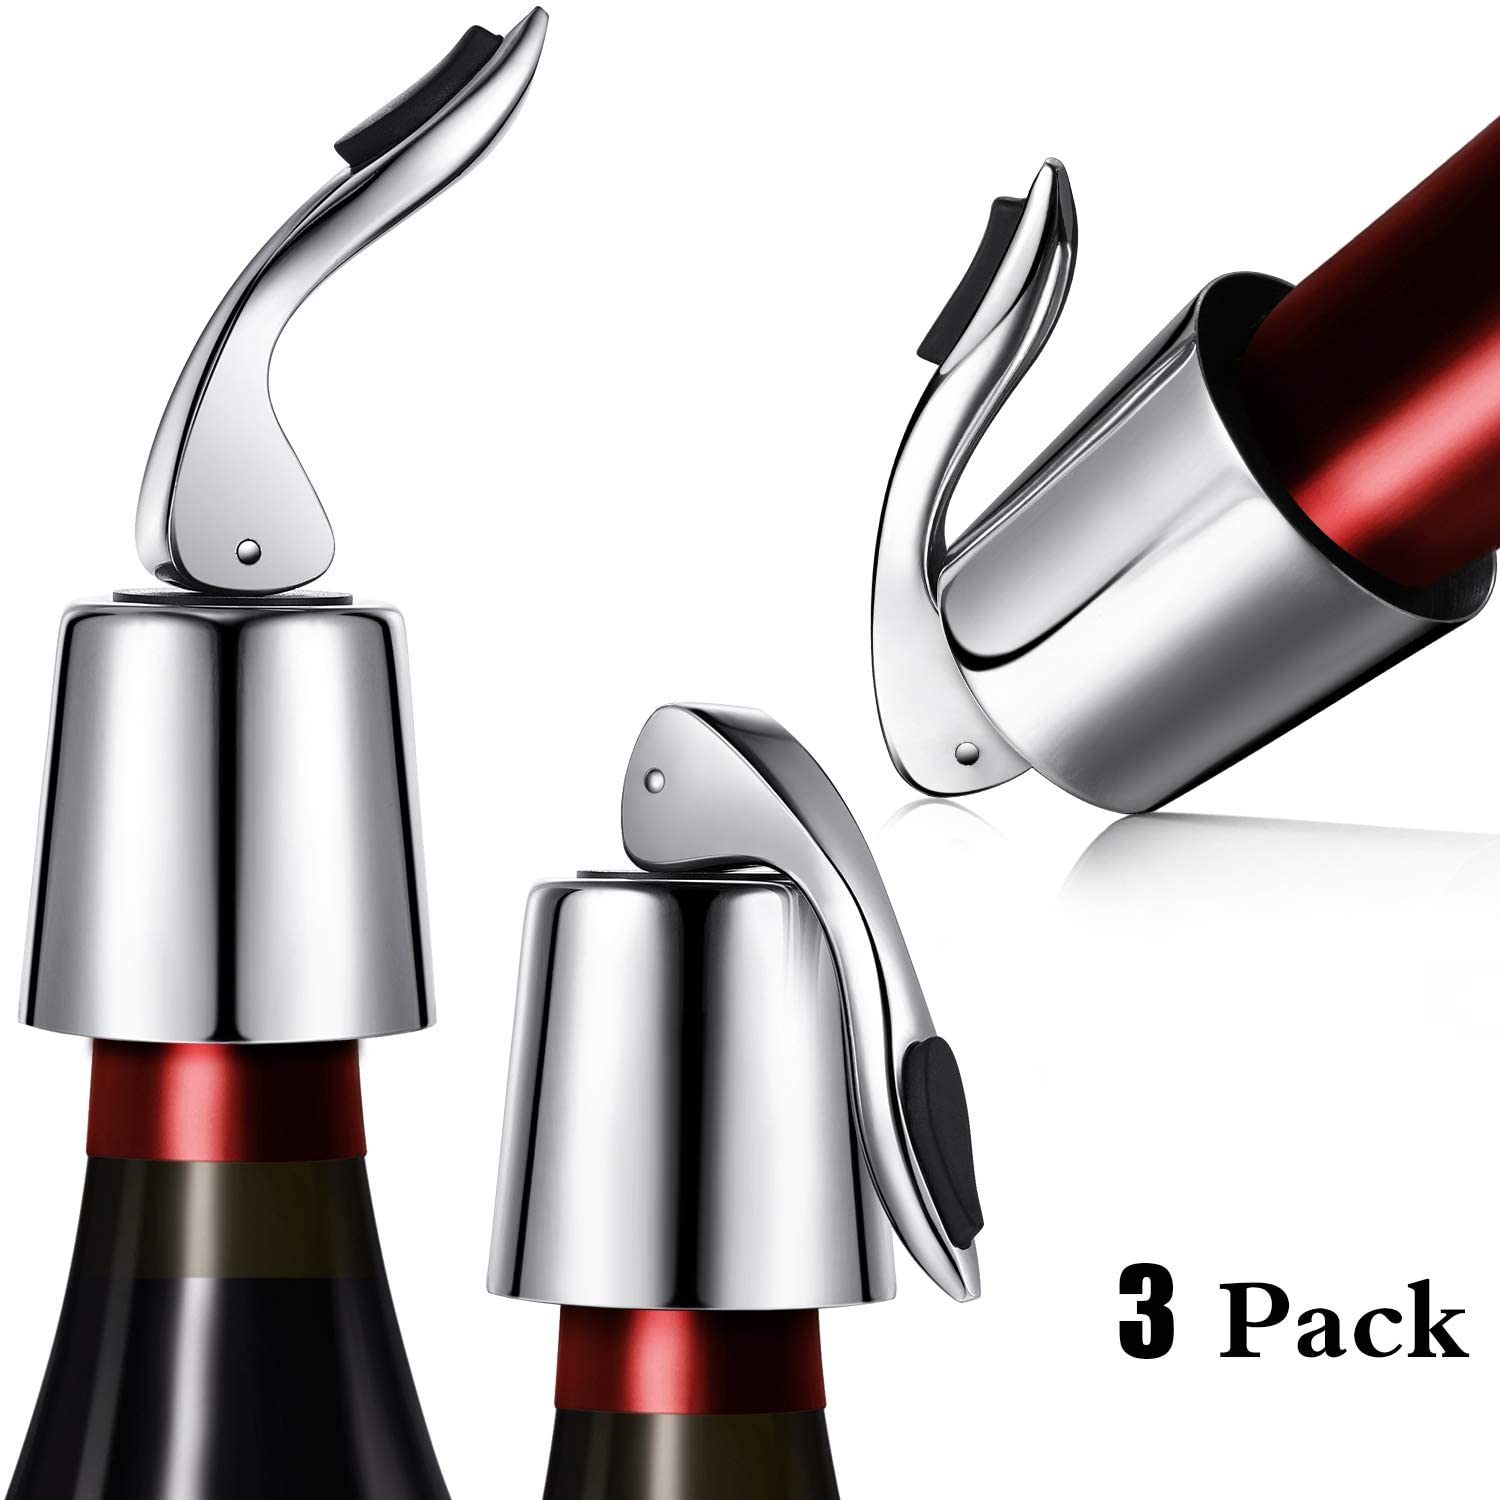 Zhanmai Stainless Steel Wine Stoppers Bottle Stoppers Vacuum Bottle Sealer Bottle Plug with Inner Rubber 1.6 x 3.7 inches (Silver)